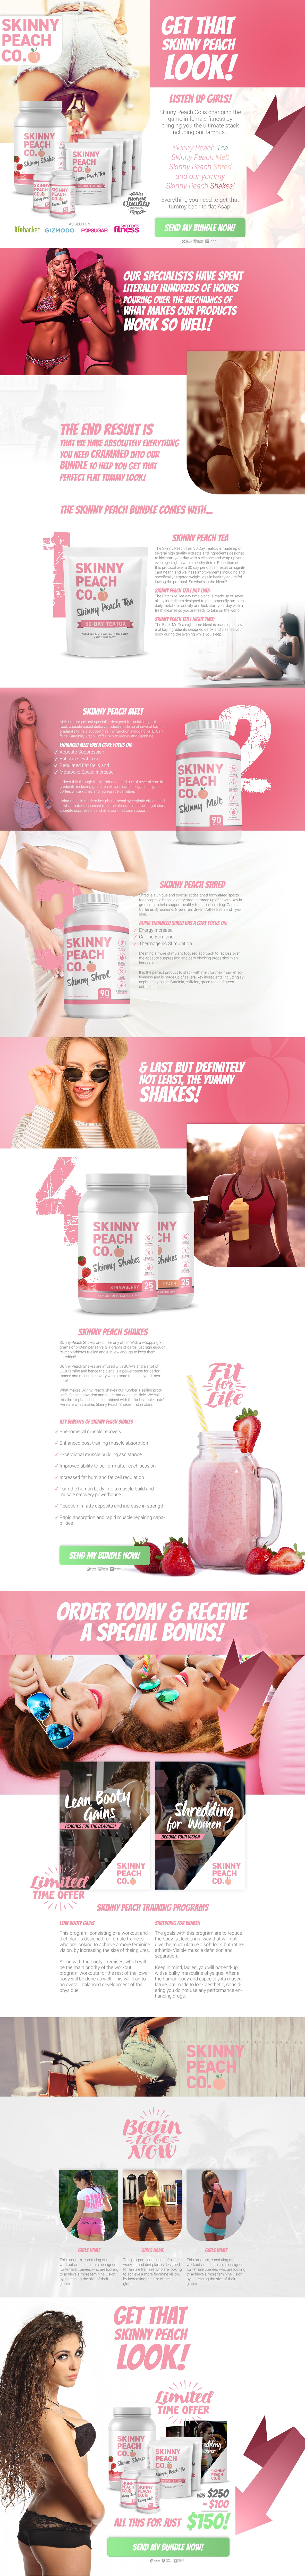 SkinnyPeach Landing Page by Jon Craig Design